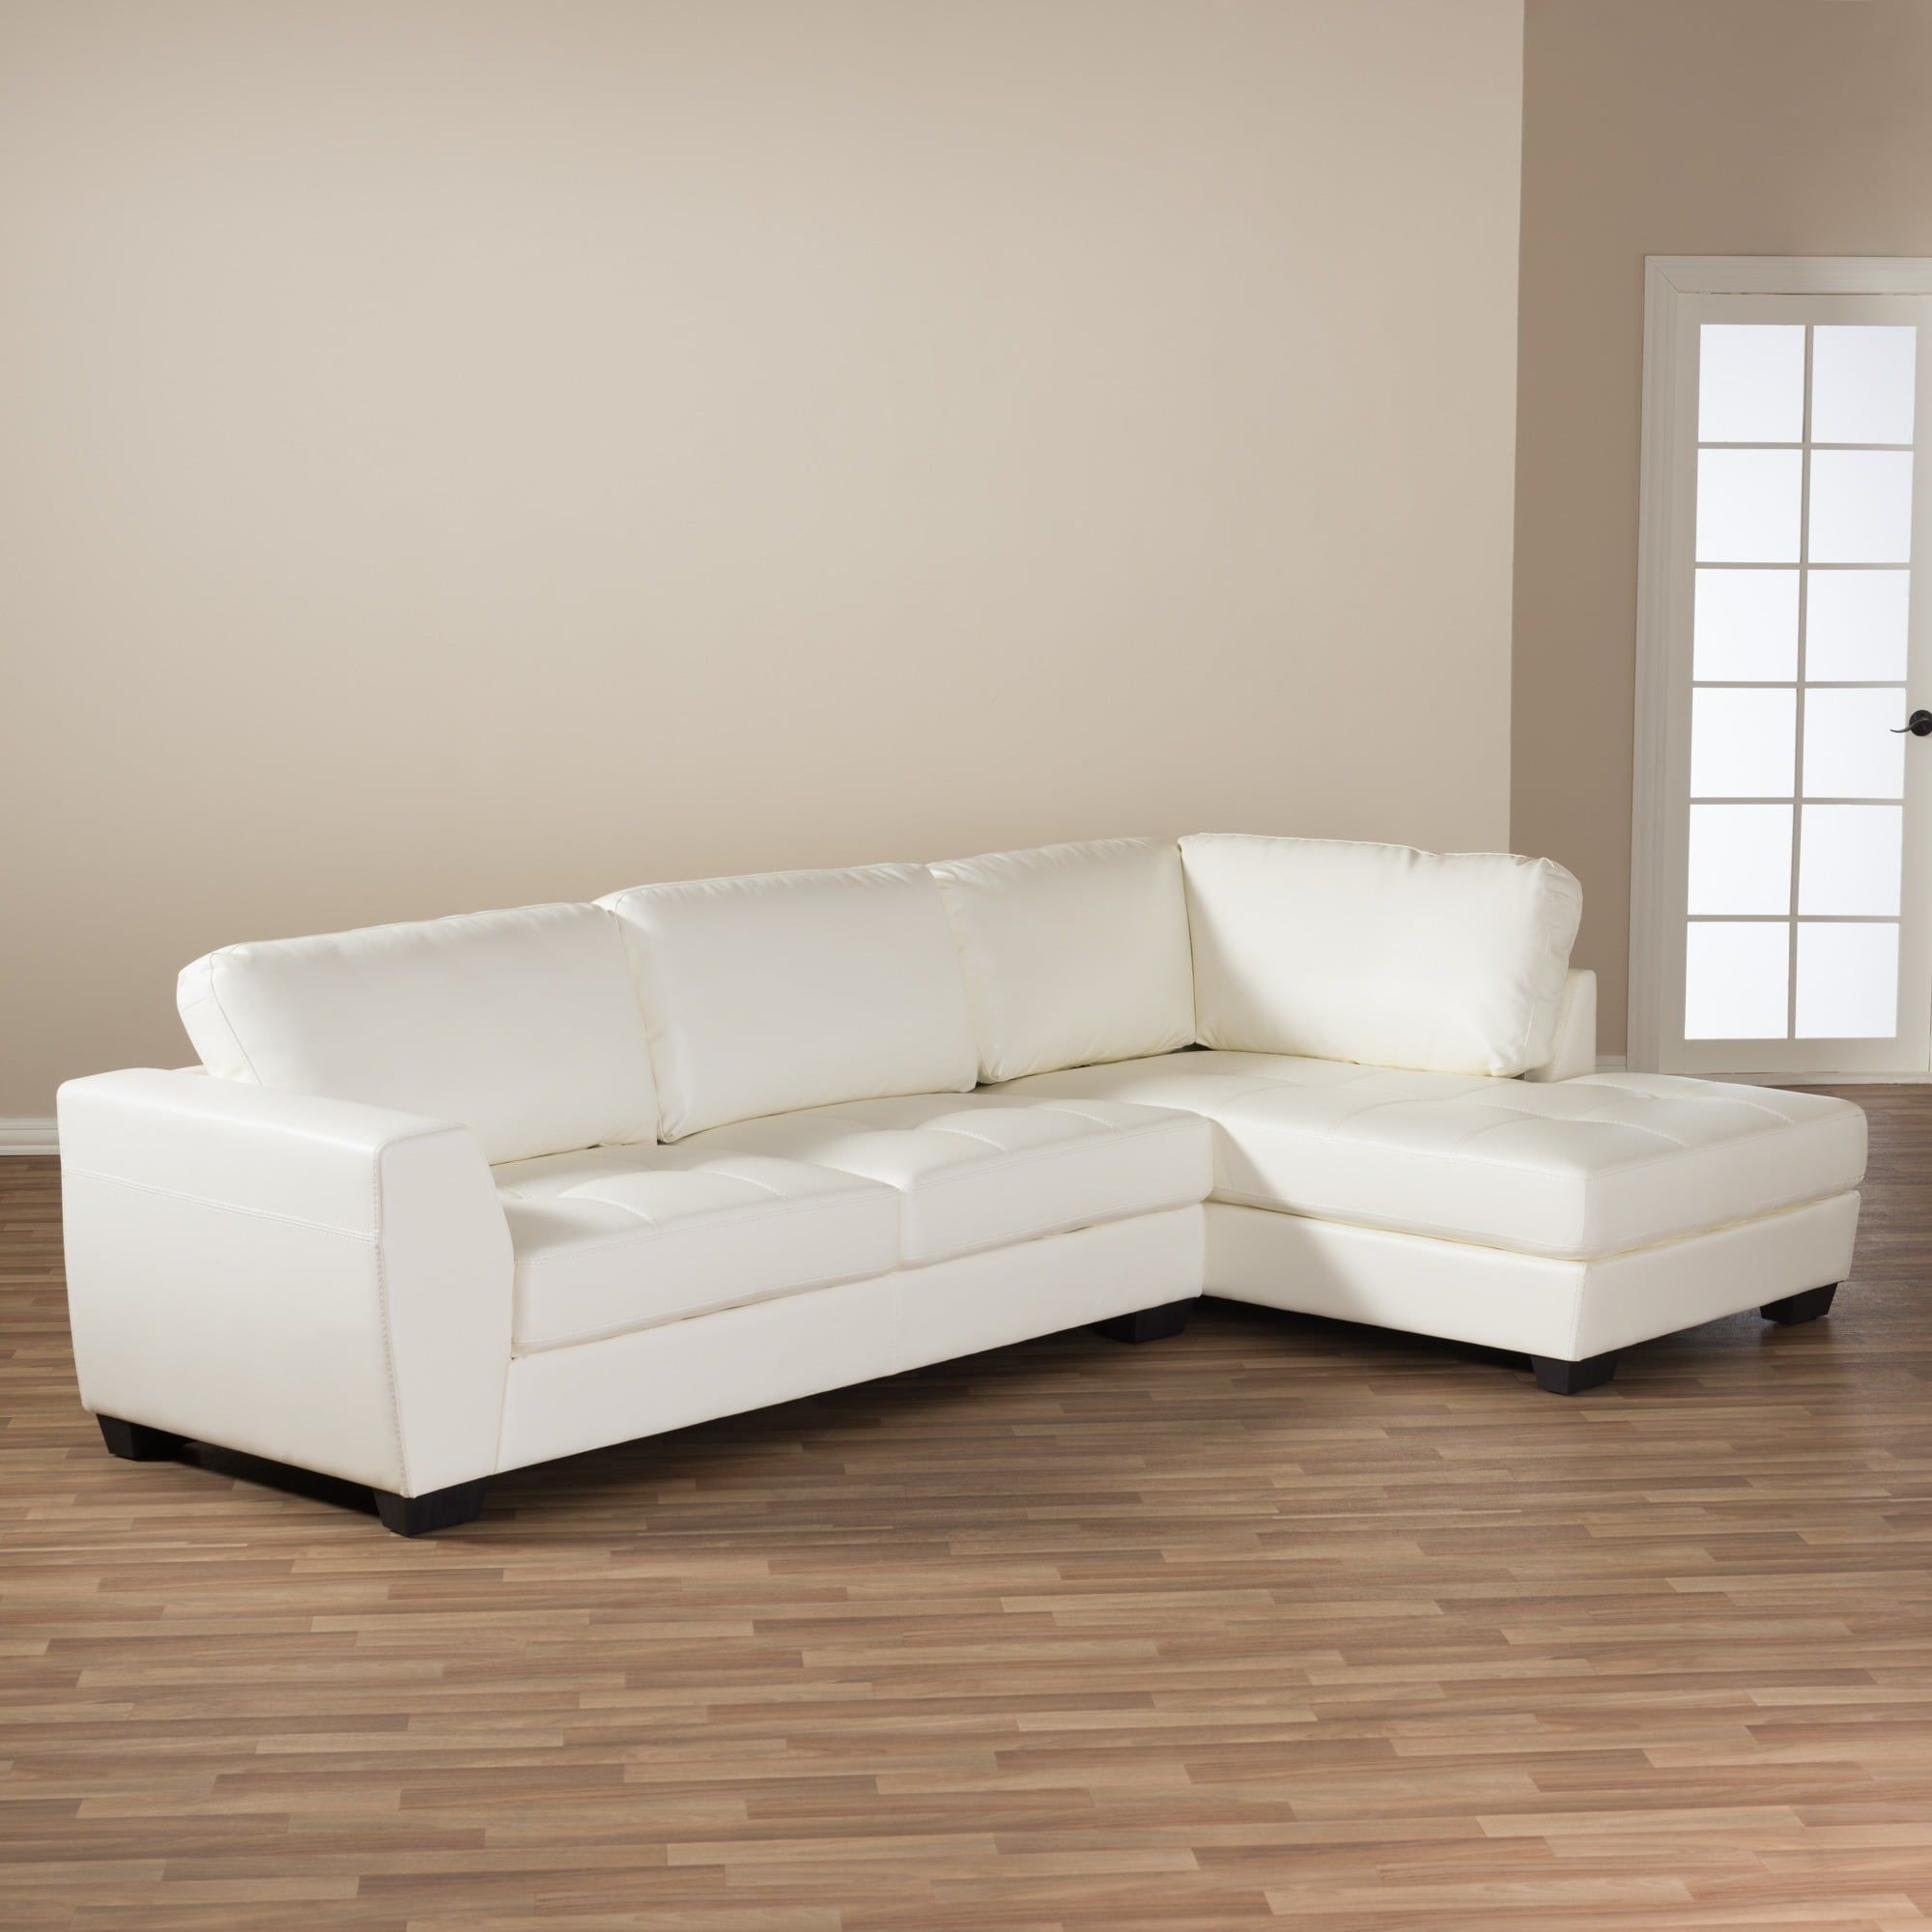 Awesome Maison Rouge Lee White Leather Modern Sectional Sofa Set Gmtry Best Dining Table And Chair Ideas Images Gmtryco